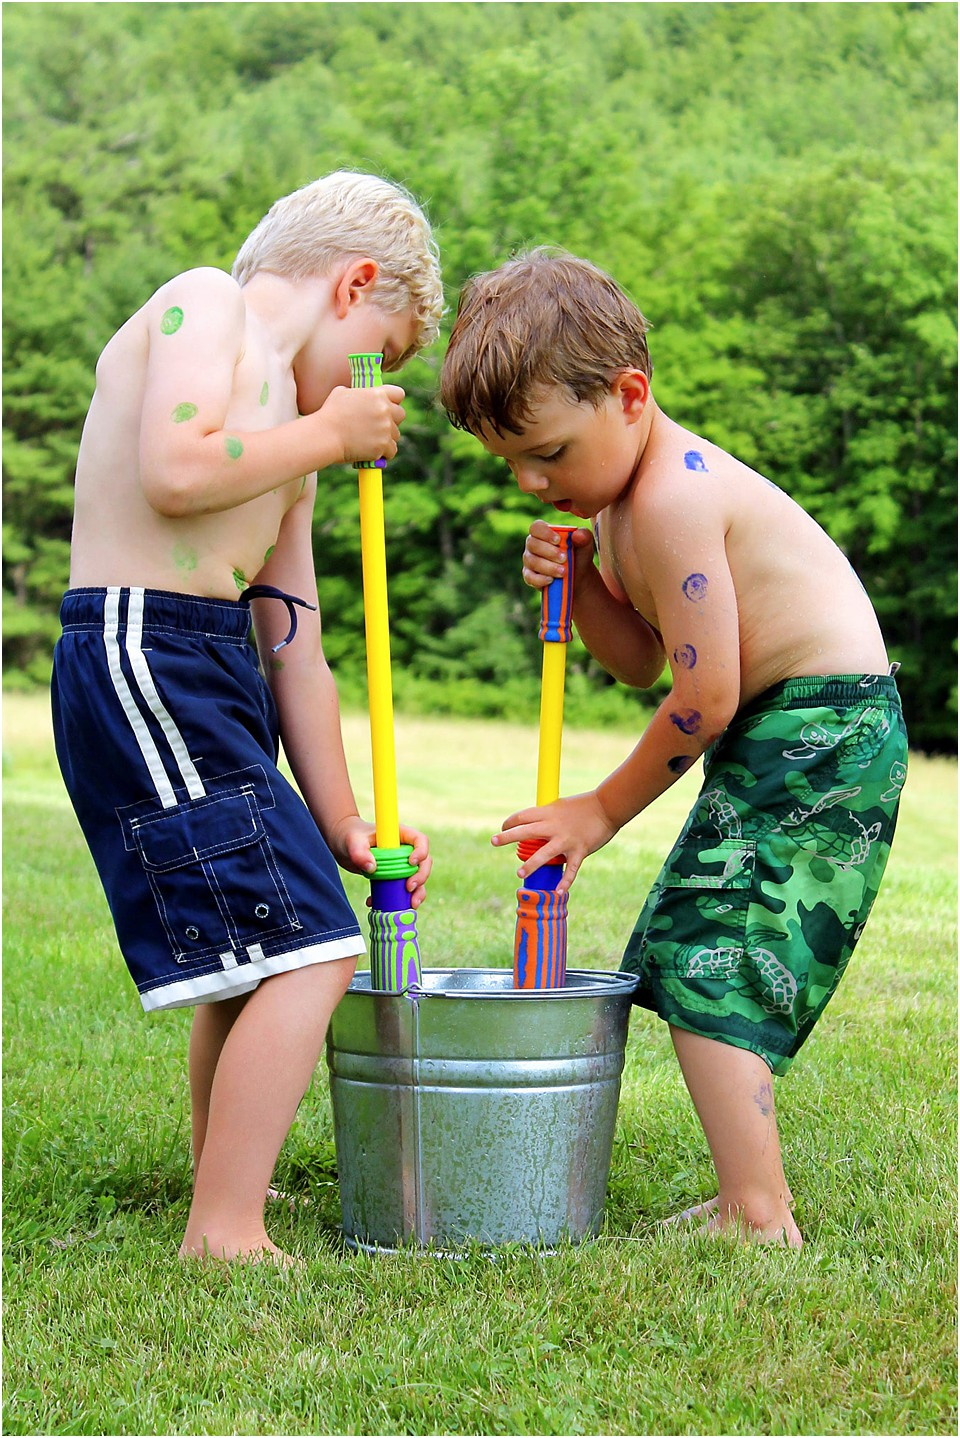 two boys with water guns filling up and having outside fun